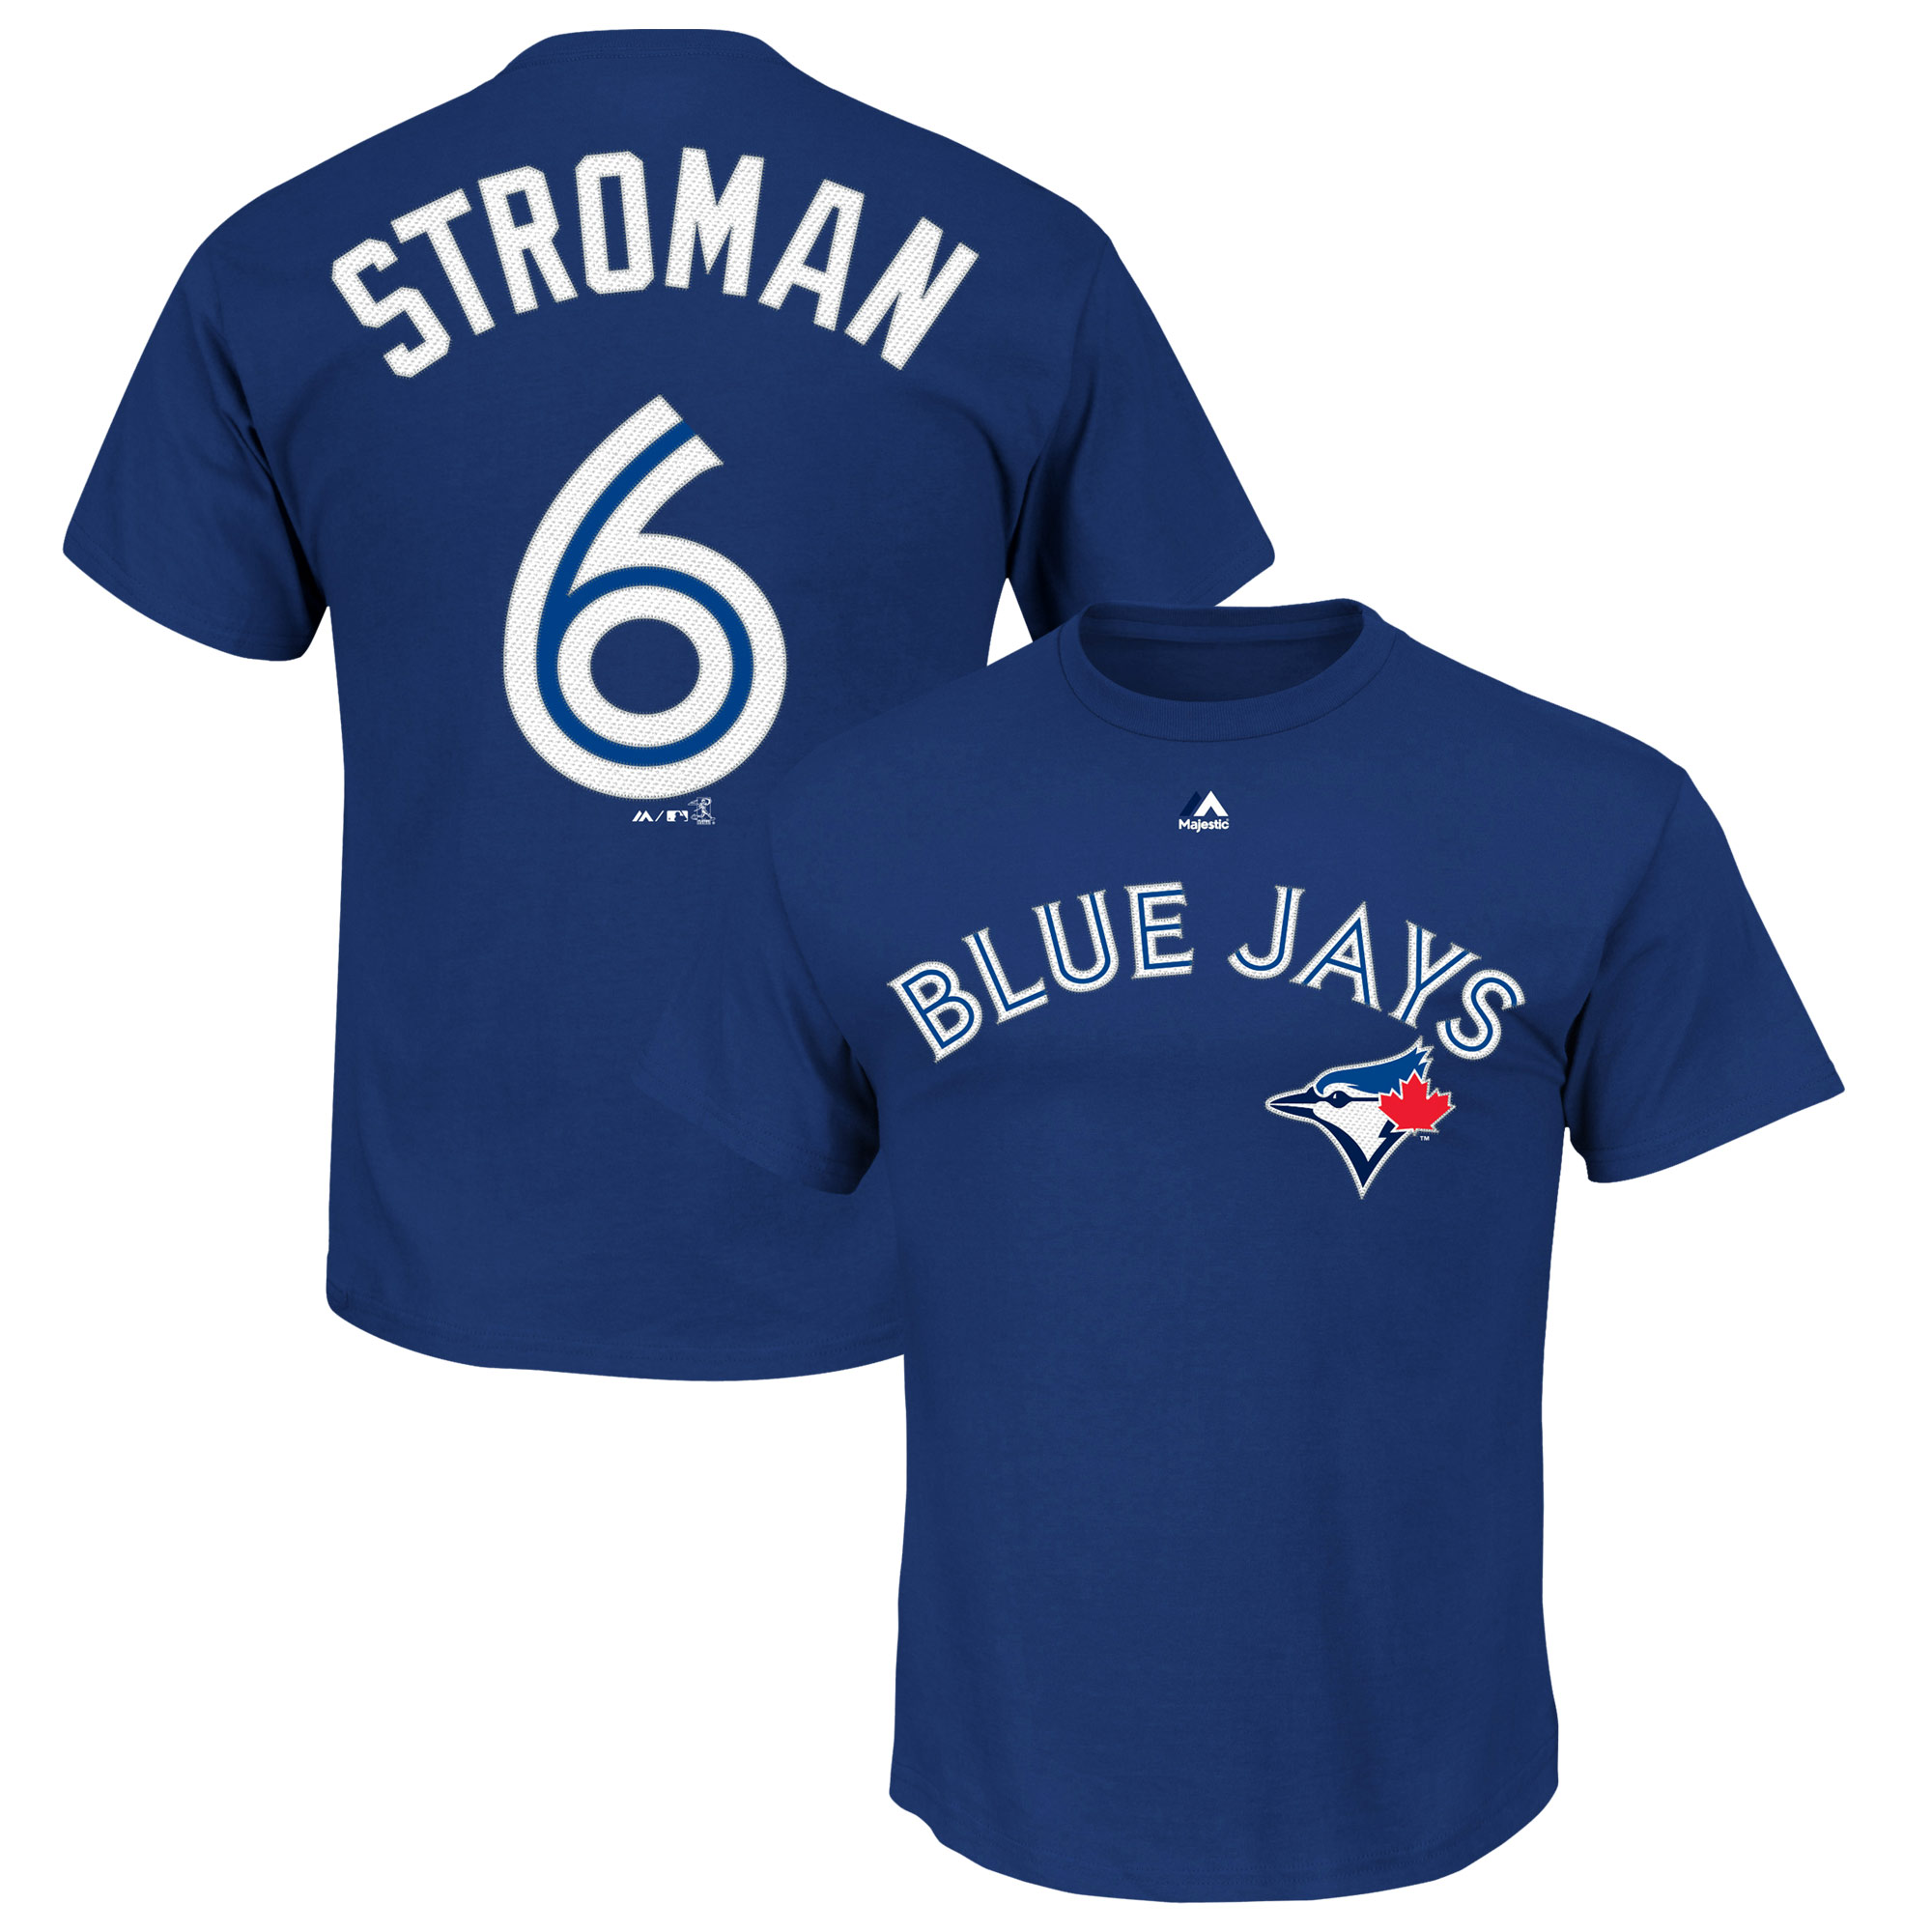 Marcus Stroman Toronto Blue Jays Majestic Official Name & Number T-Shirt - Royal